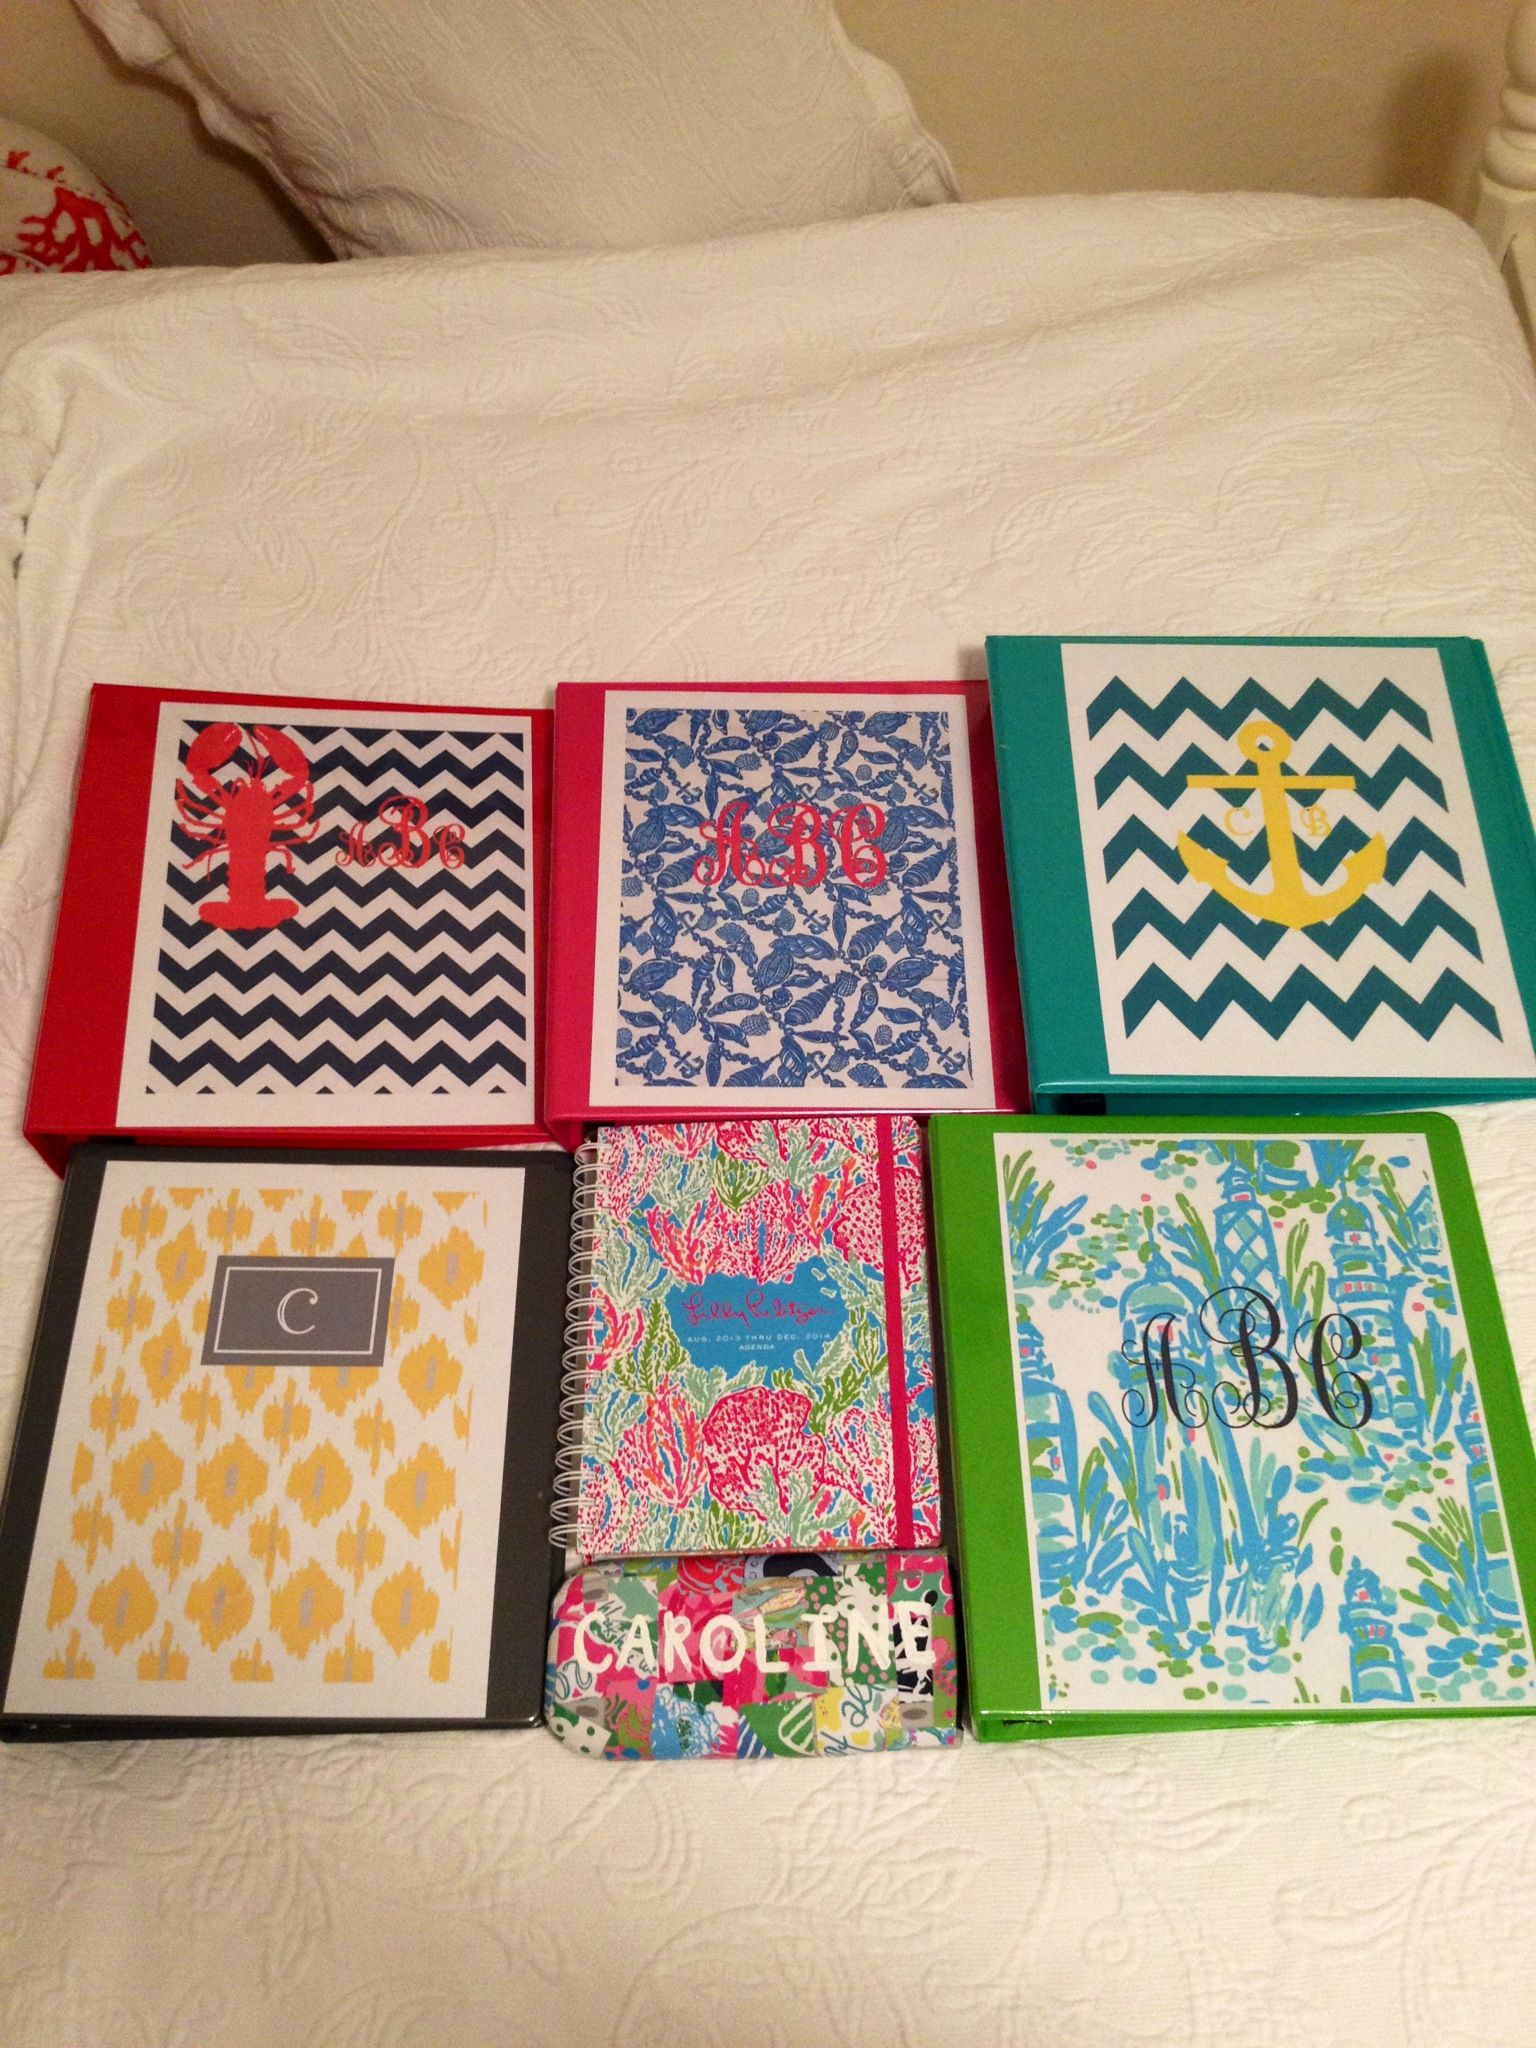 Diy lilly calculator and binder covers get crafty for Lilly d s craft supplies